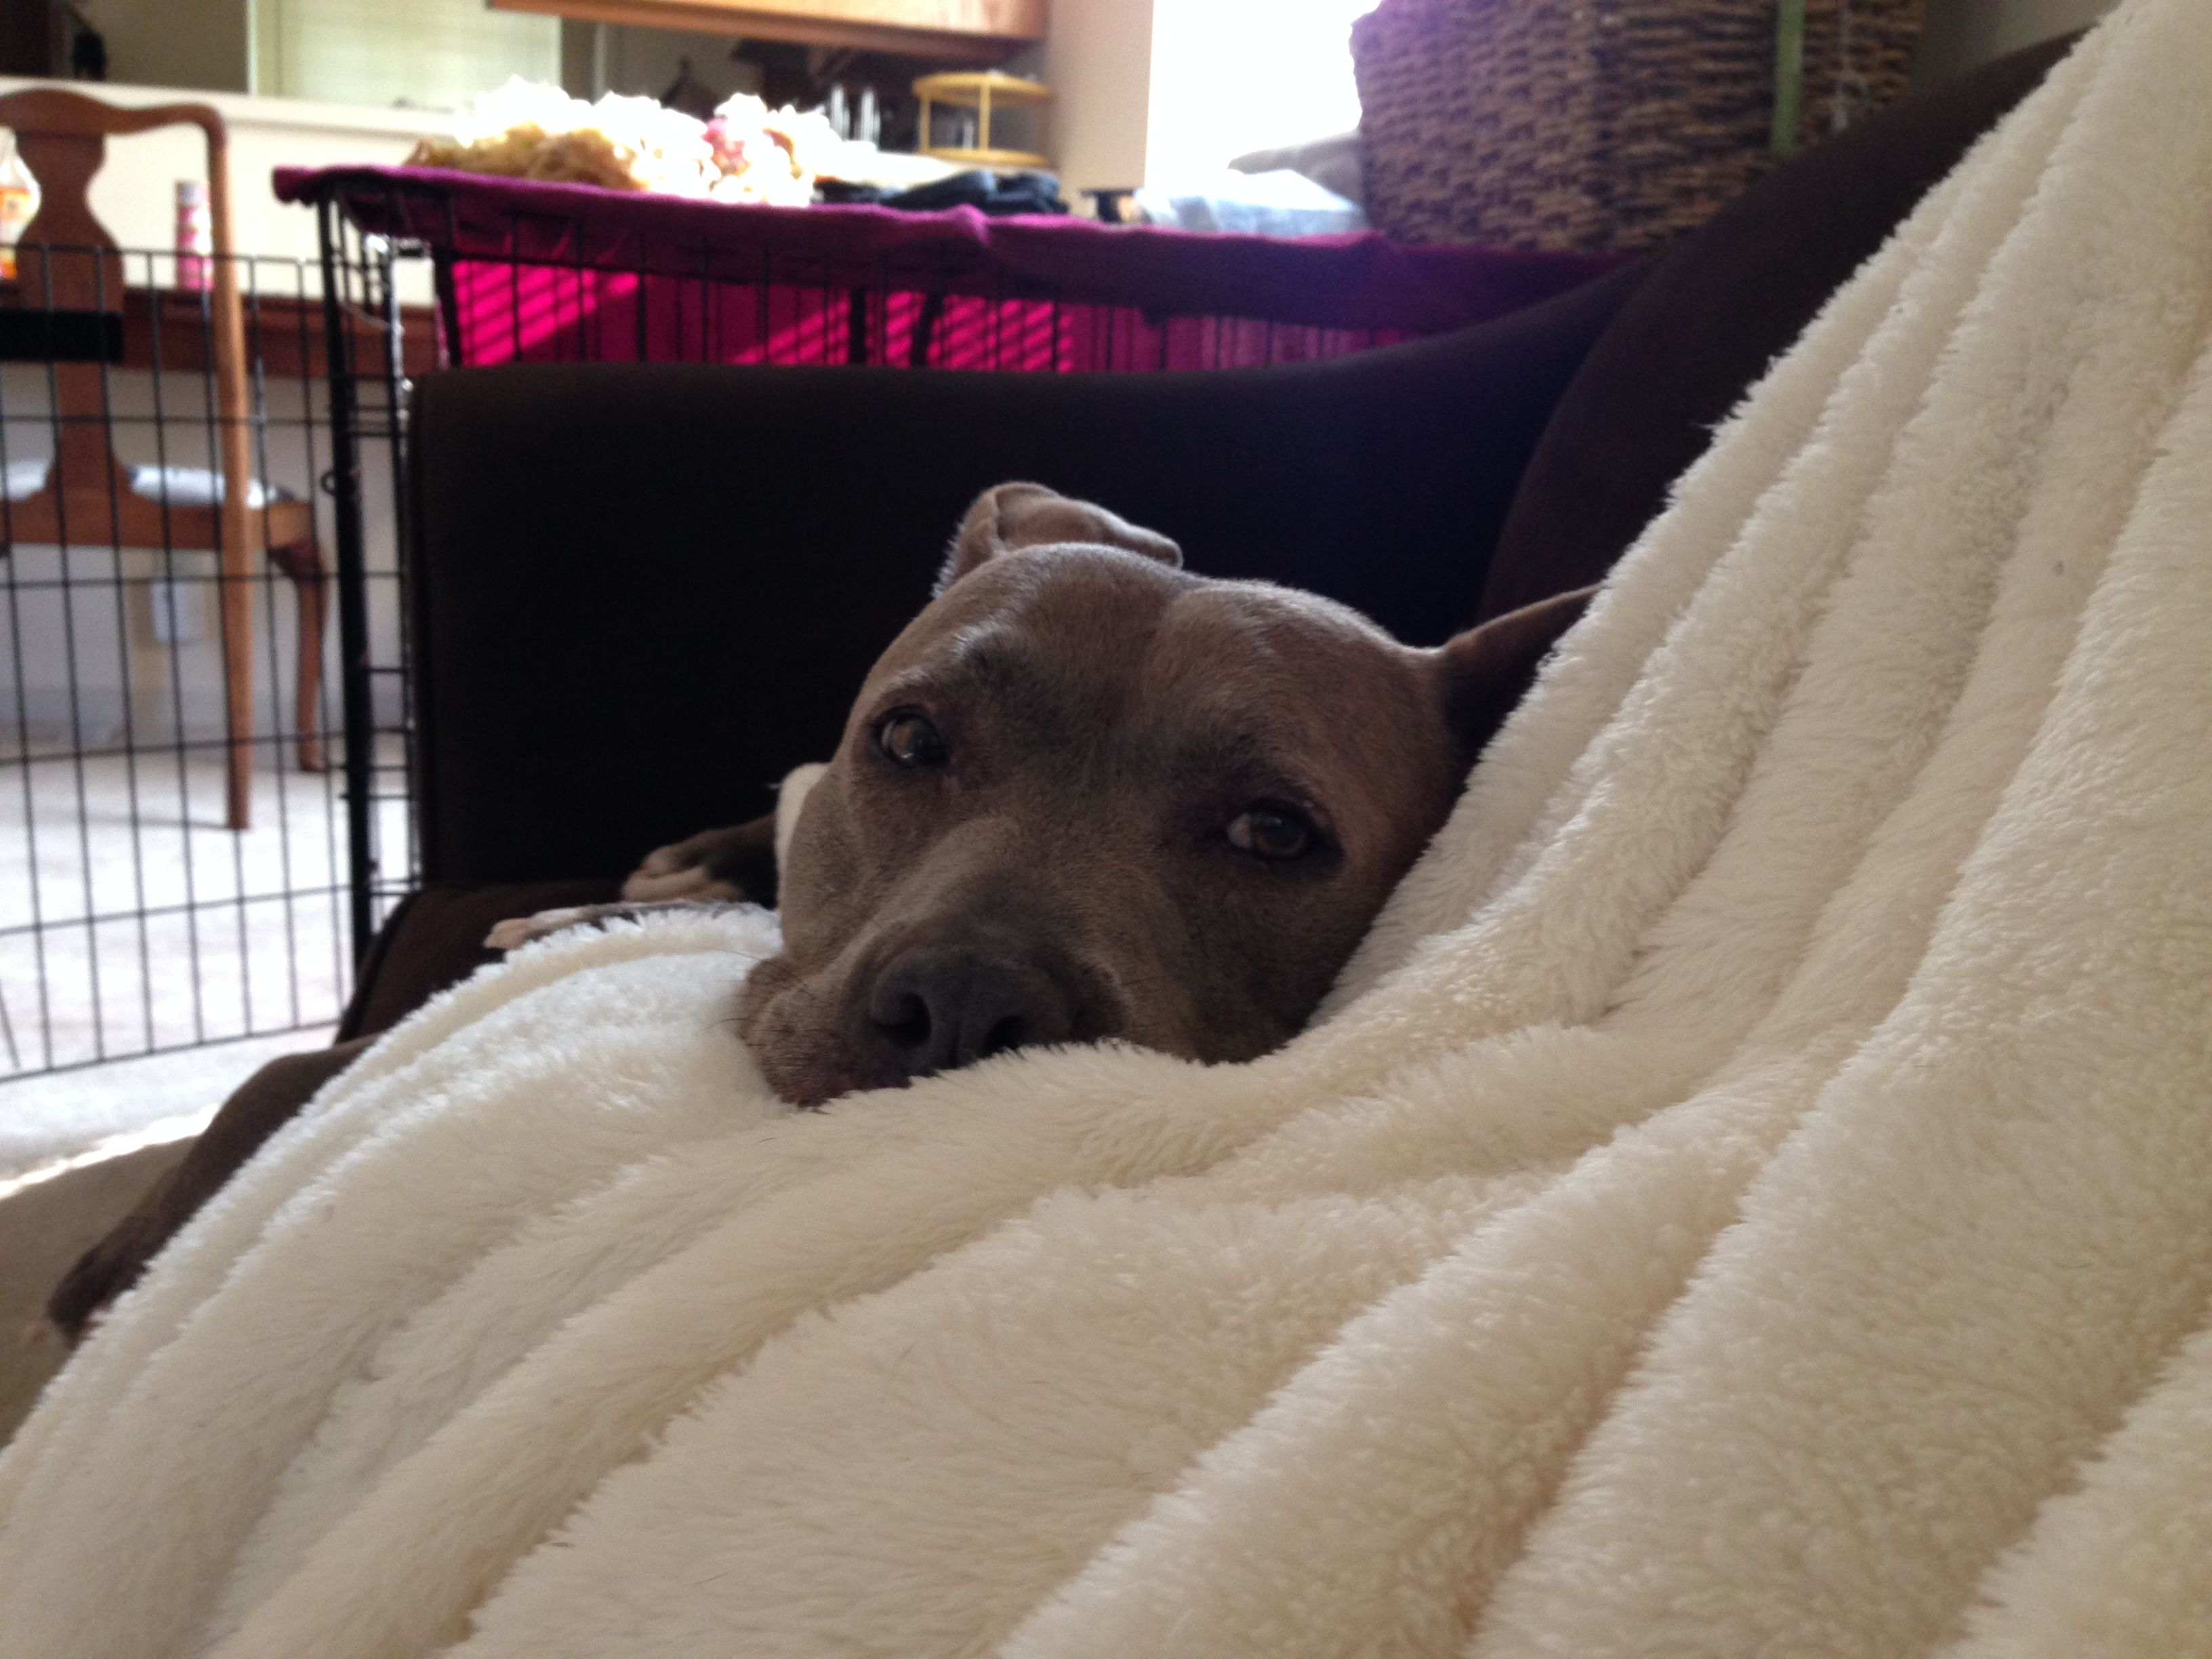 I Had A Little Outpatient Surgery So Nurse Girlie Has Been Taking Care Of Her Mom Nanny Dog Pitbull Owners Pitbulls